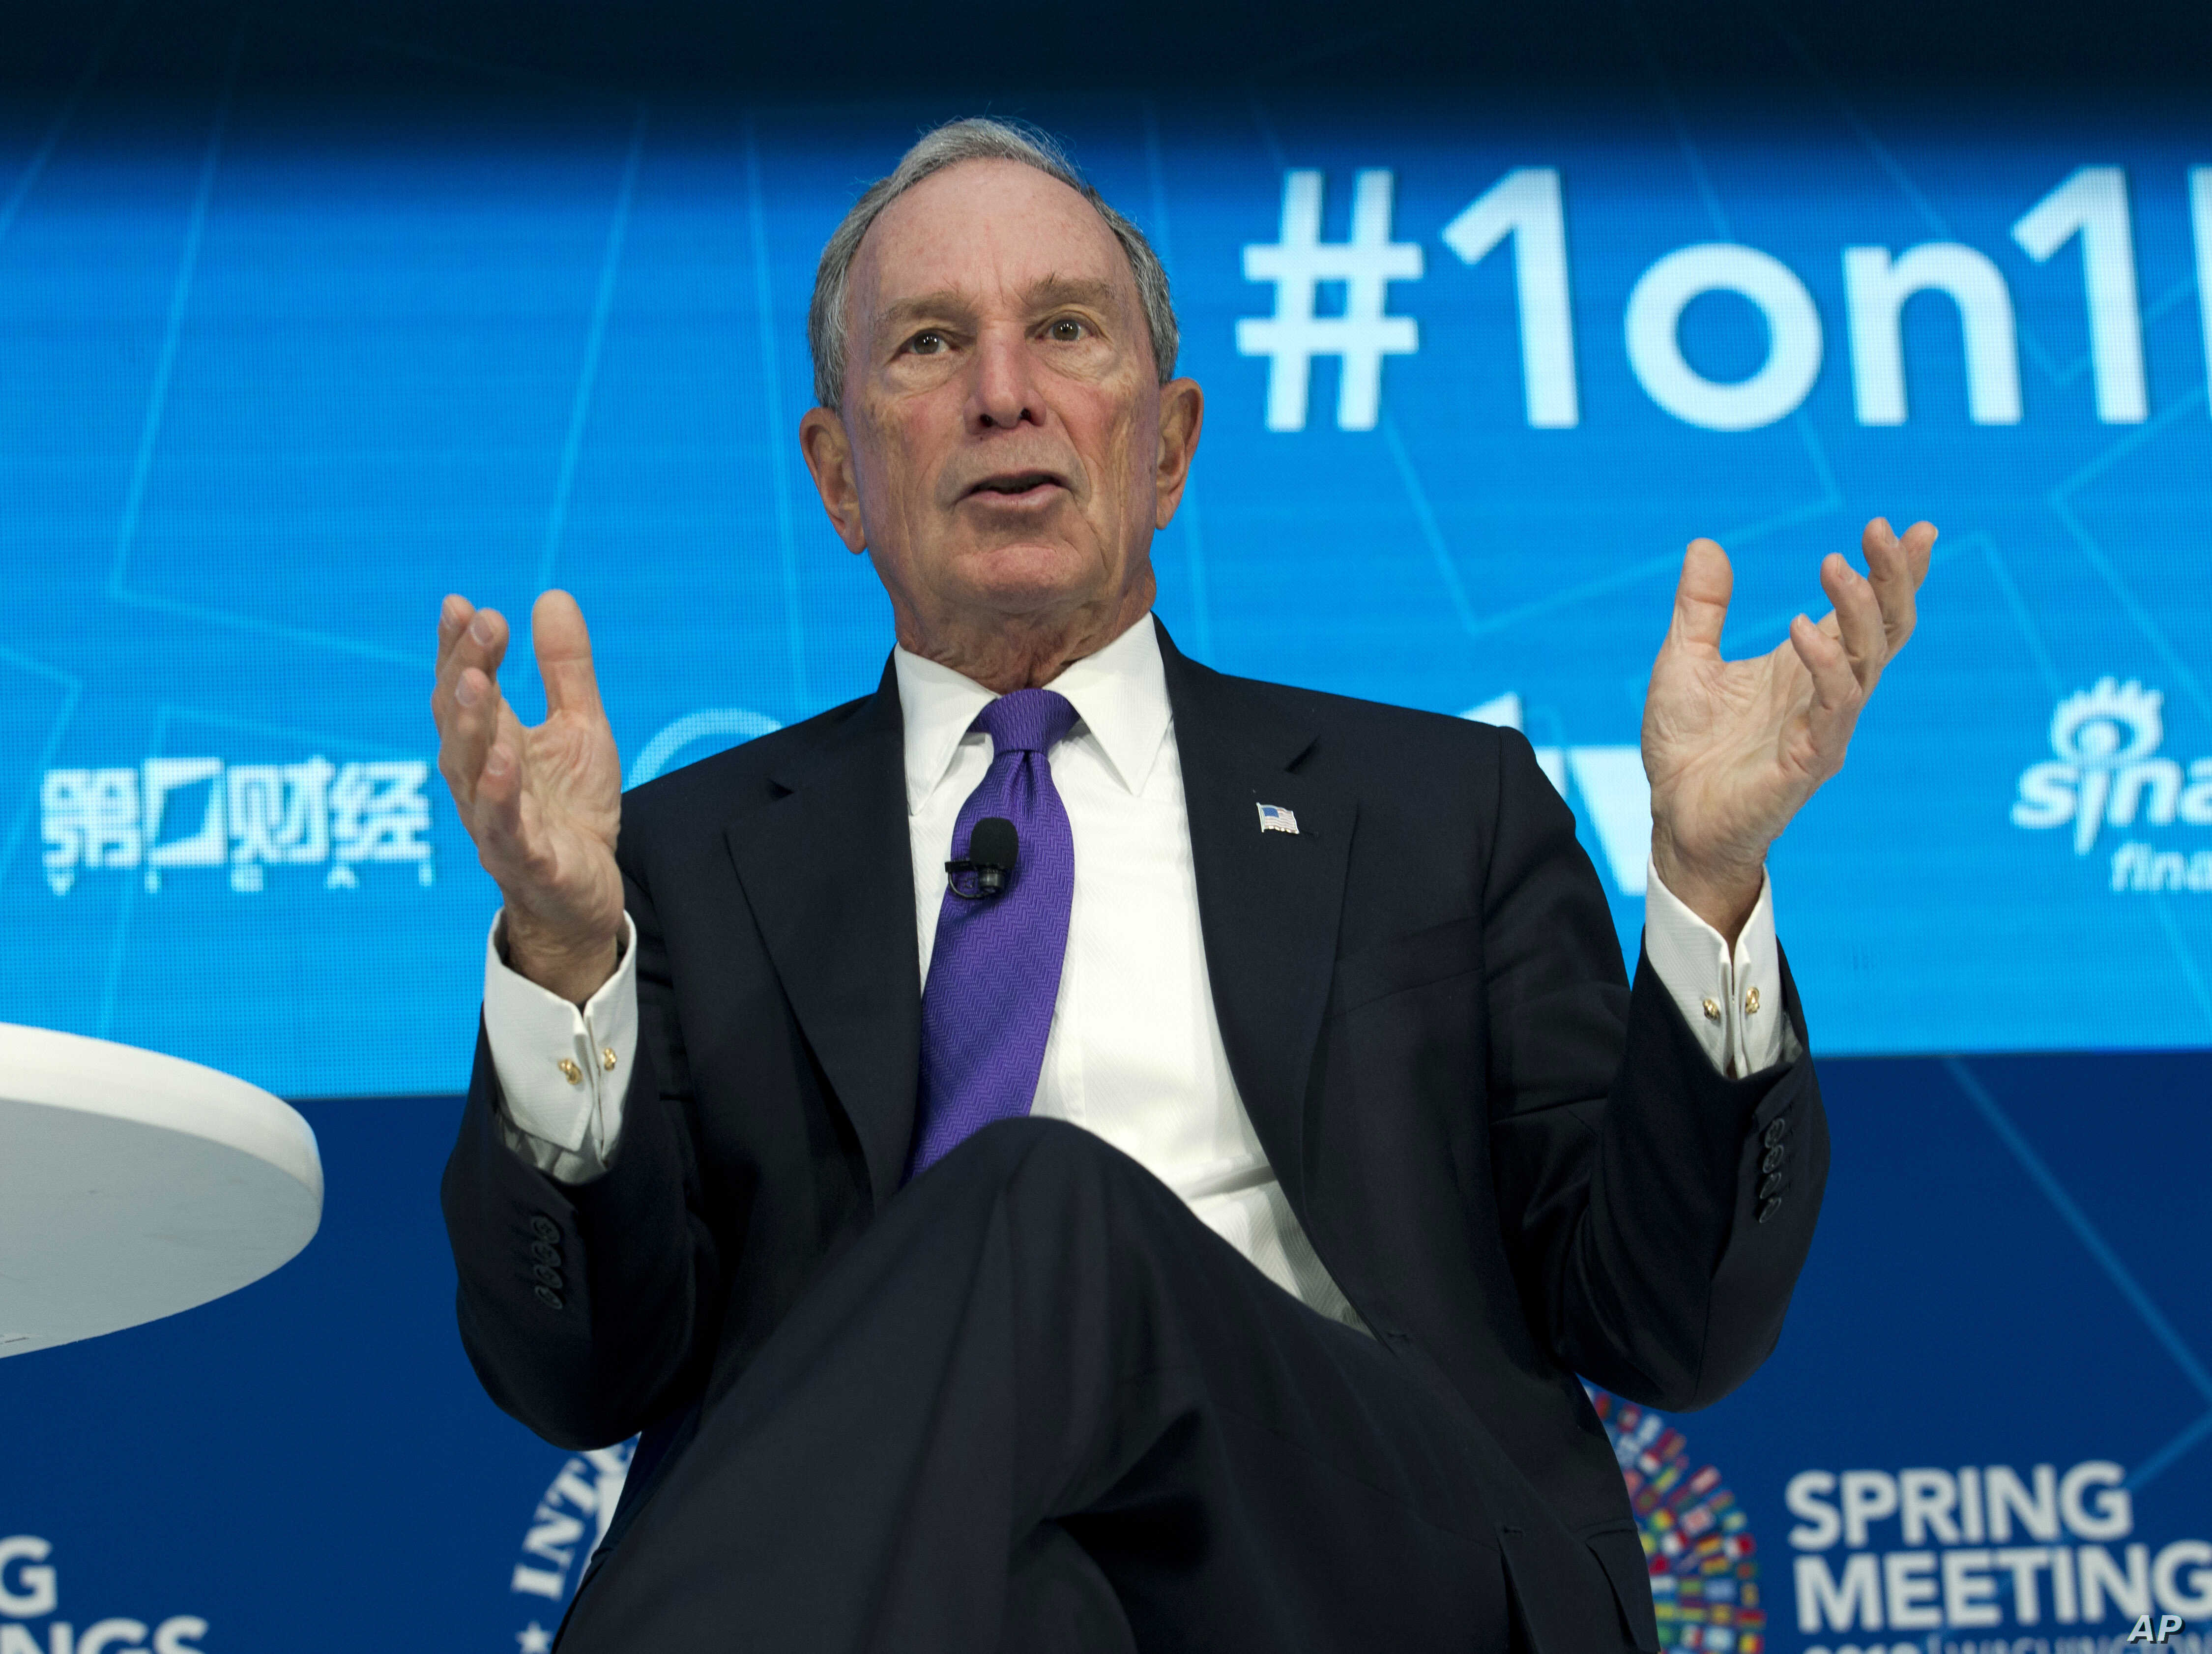 Former New York City Mayor and UN Special Envoy for Climate Action Michael Bloomberg speaks at World Bank/IMF Spring Meetings, in Washington, April 19, 2018.